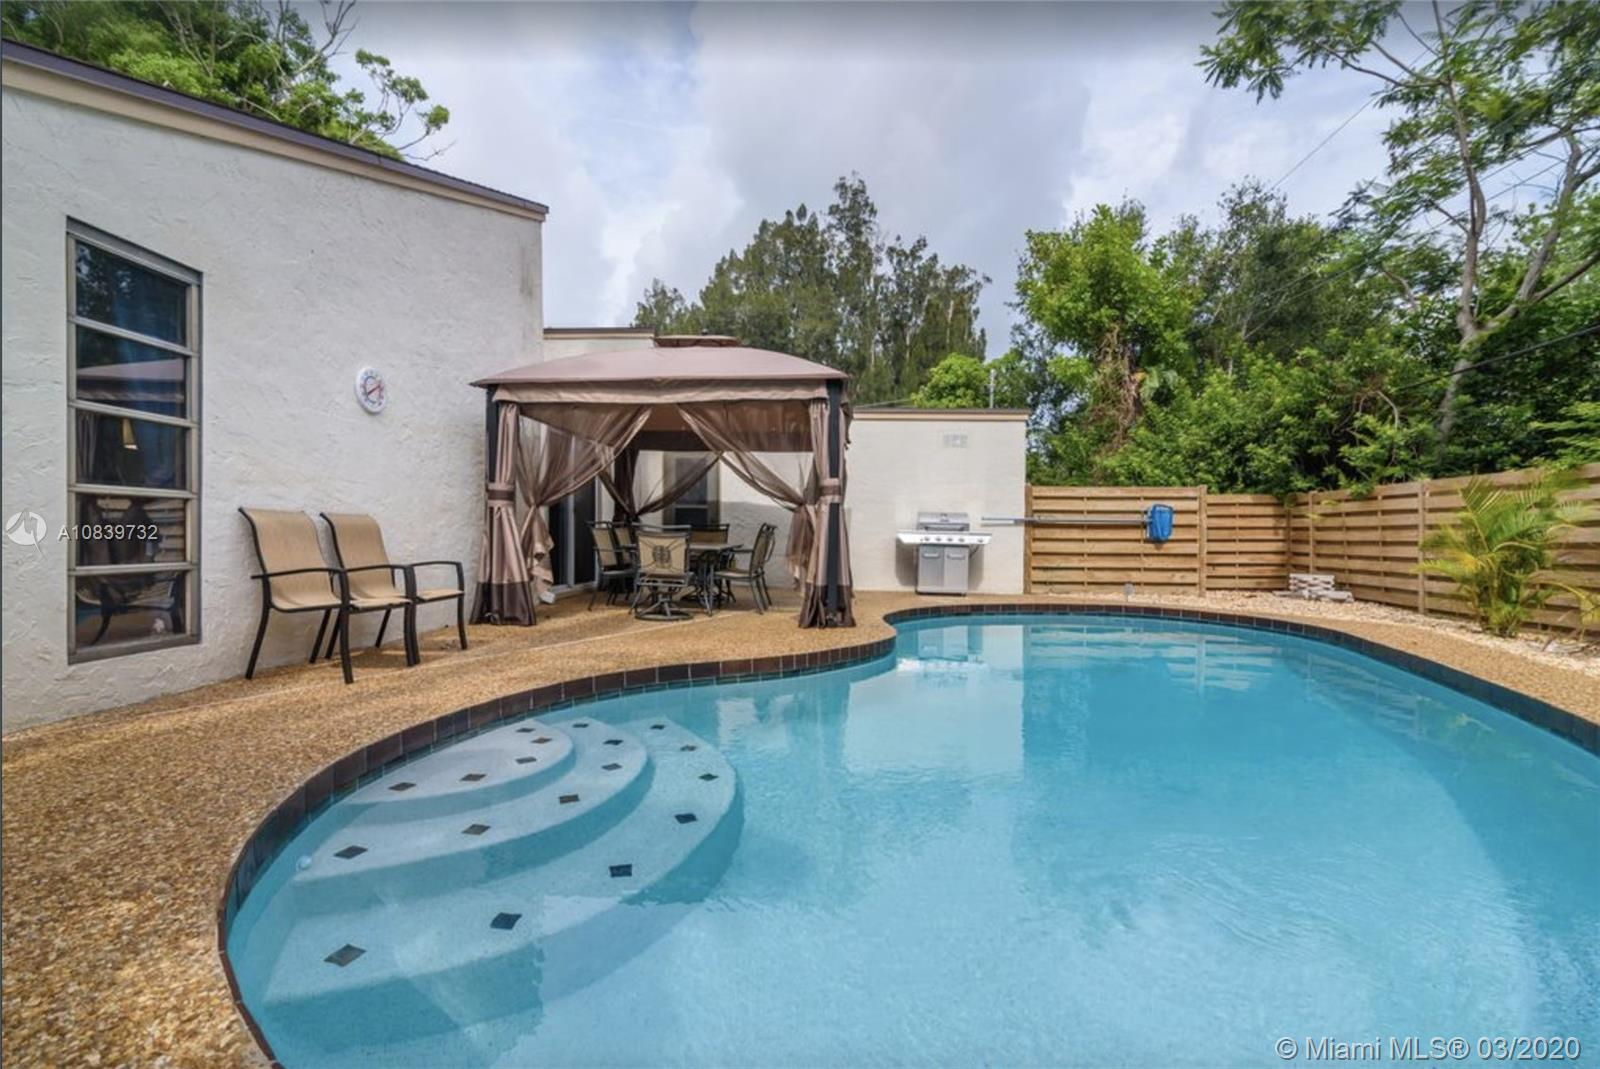 2315 Riverwood Pines Dr, Other City - In The State Of Florida, Florida 34231, 3 Bedrooms Bedrooms, 1 Room Rooms,2 BathroomsBathrooms,Residential,For Sale,2315 Riverwood Pines Dr,A10839732